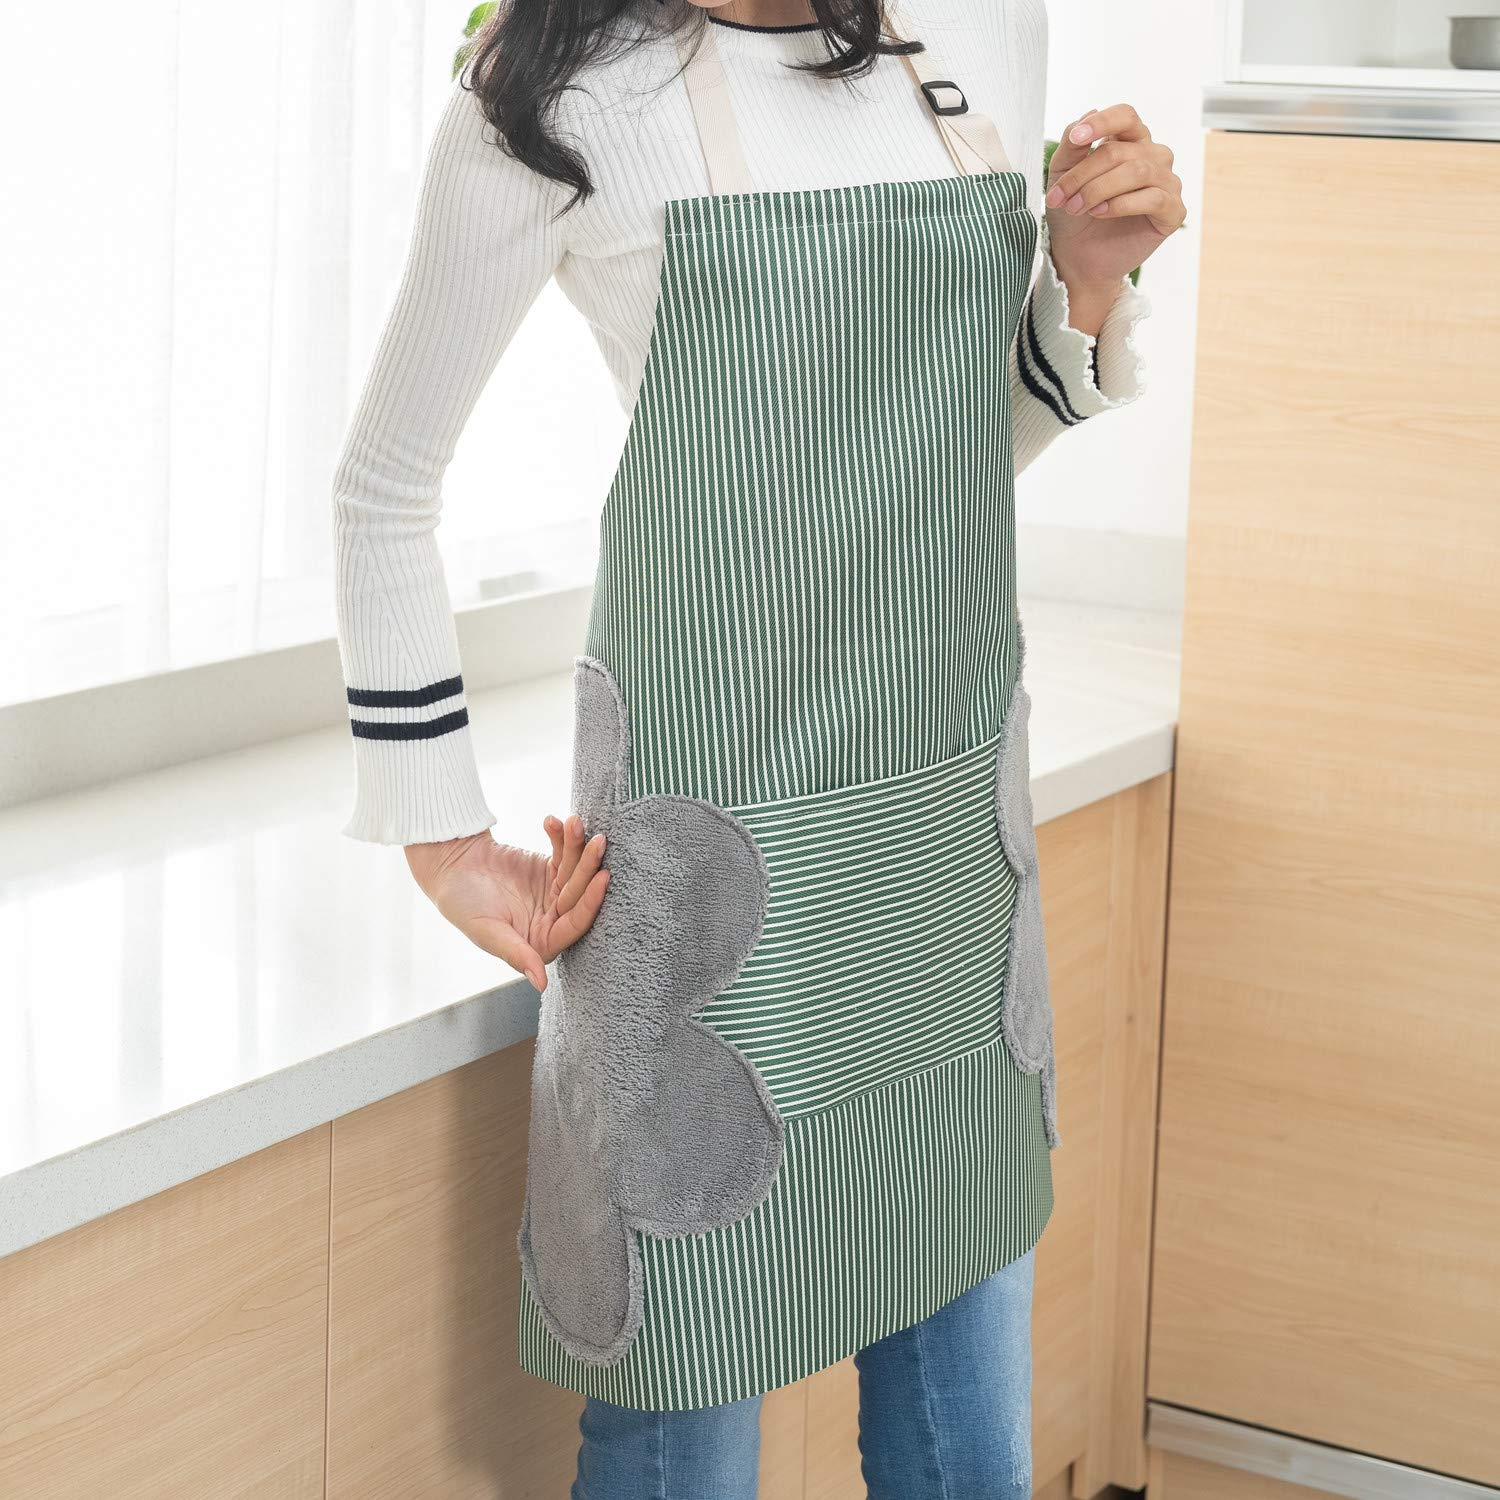 Lot-Yes Waterproof Apron with Pocket,Two Owels Stitched,Adjustable Design of The Strap for Women, Men Kitchen, Home, Cooking (Green)